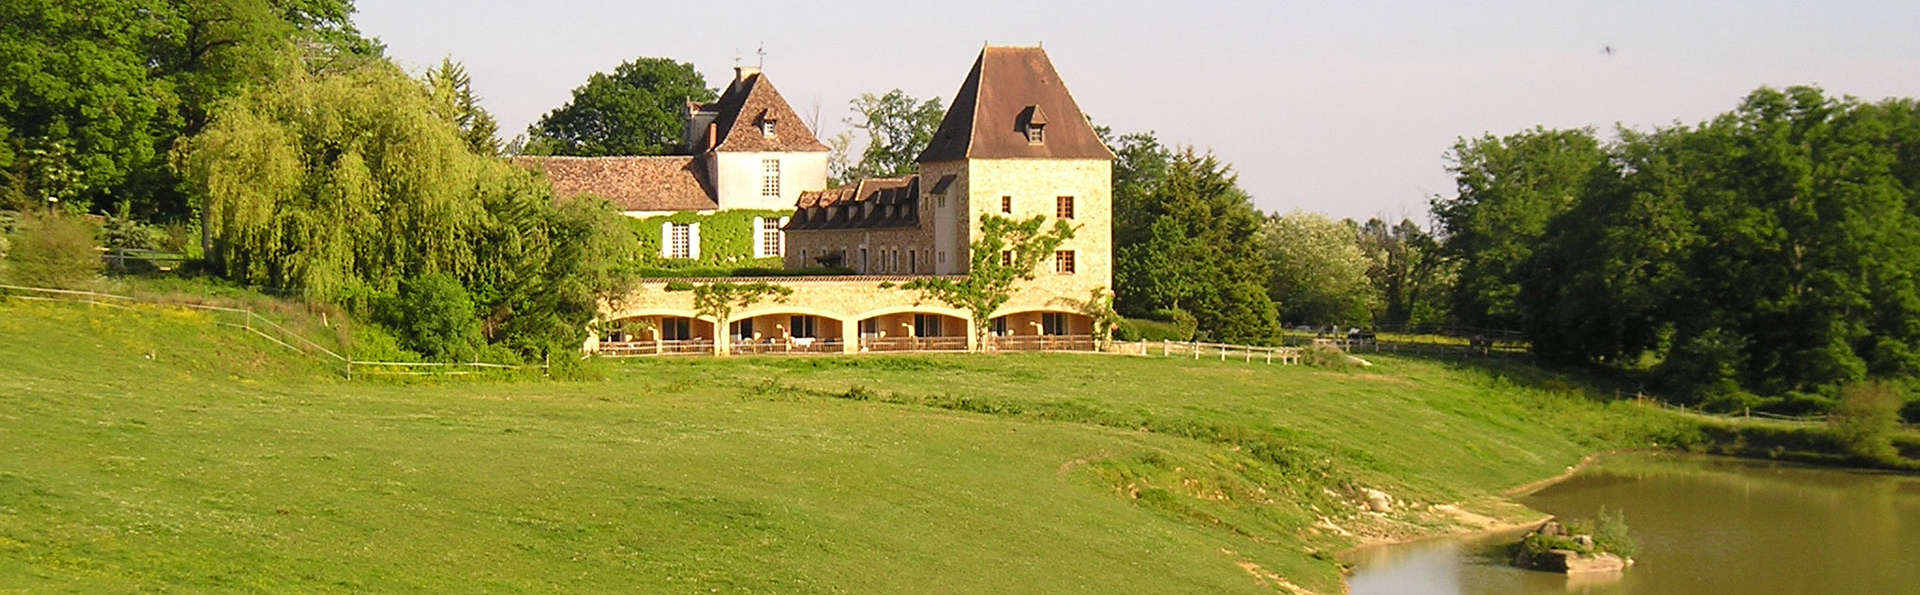 Manoir du Grand Vignoble - edit_front94.jpg